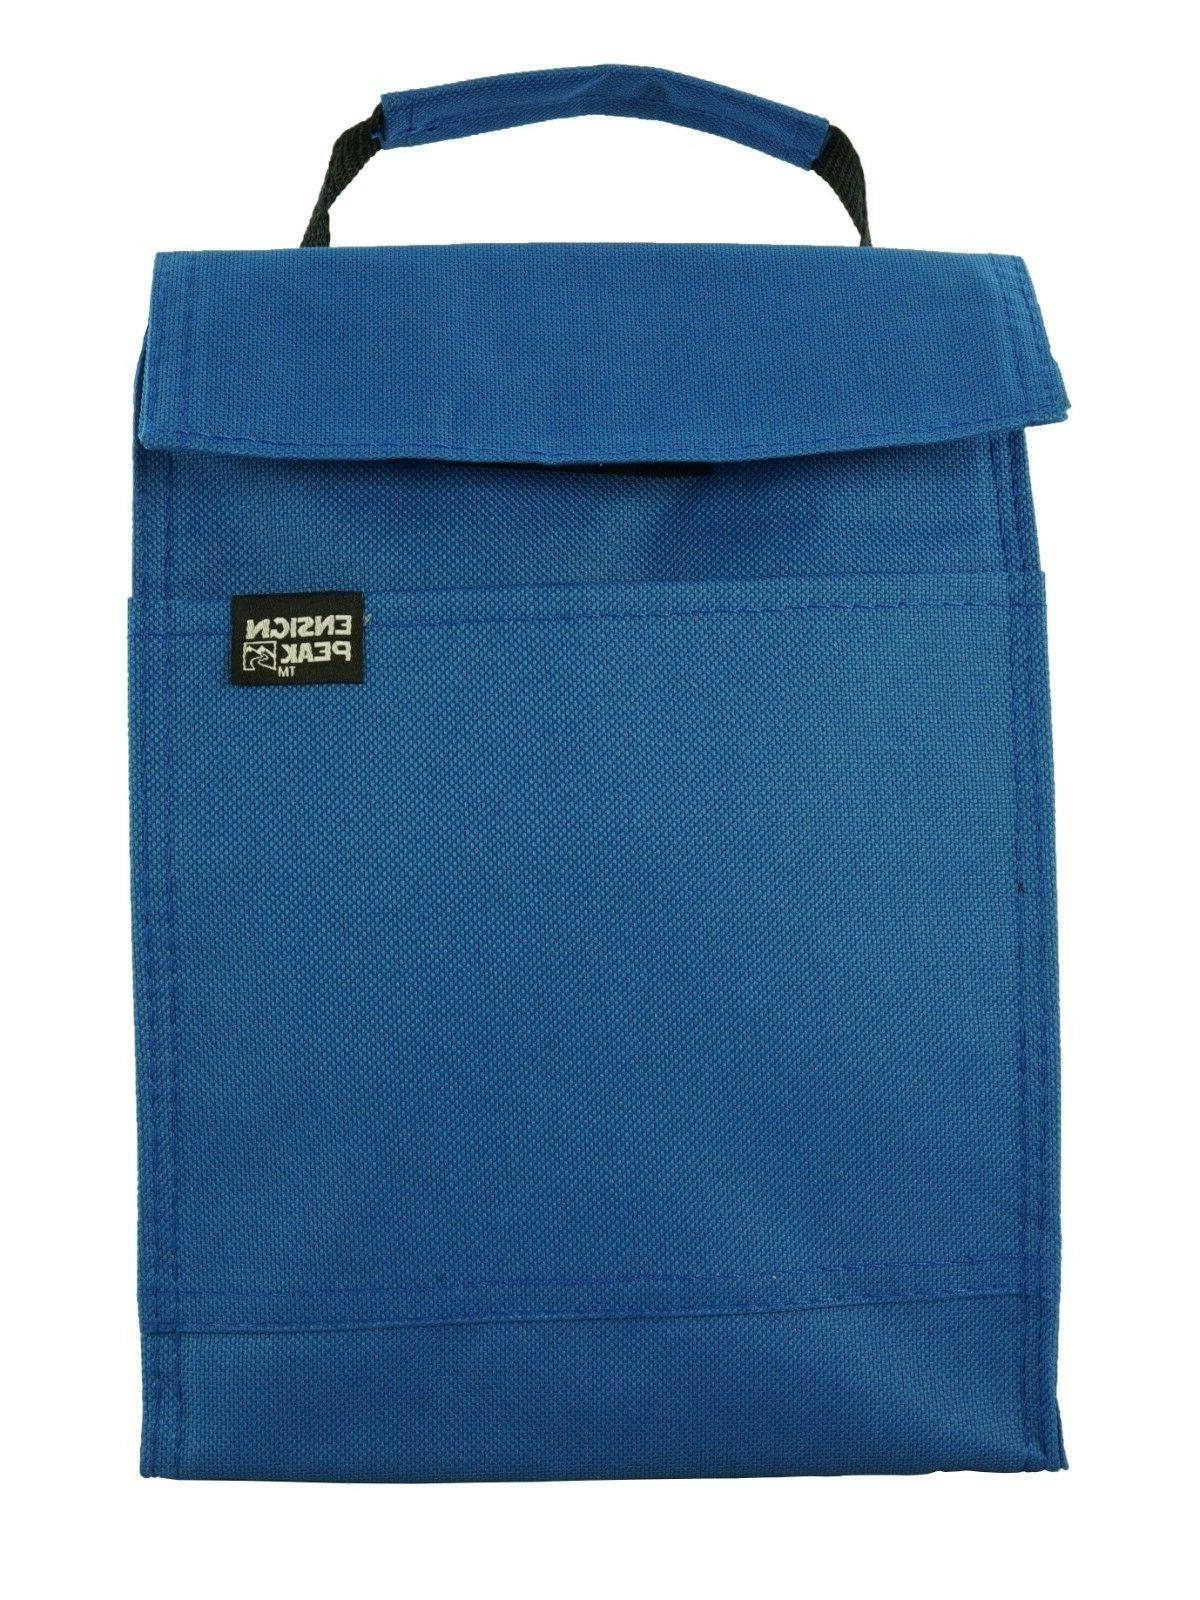 Ensign Basic Insulated Lunch Tote Travel, Work